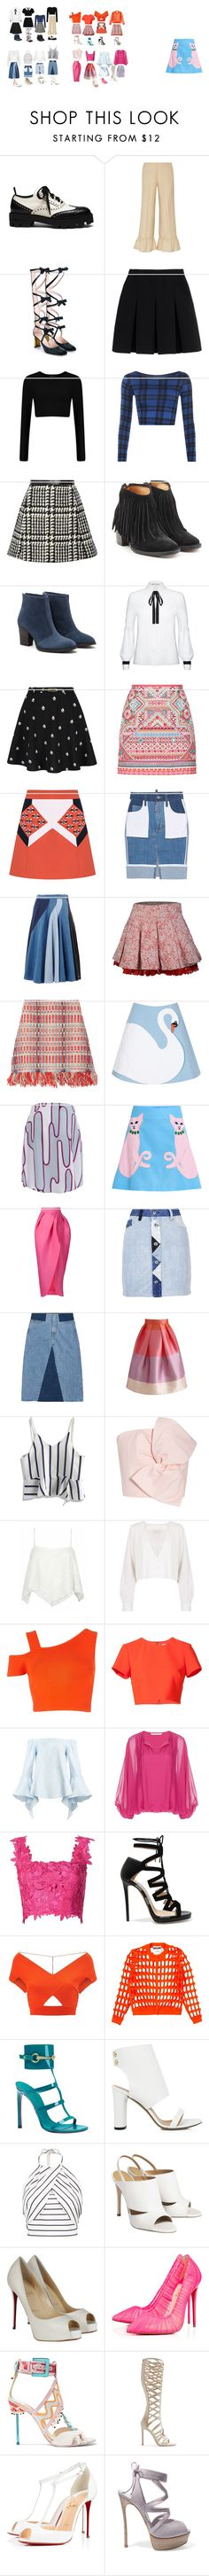 """""""ah"""" by yusufbudiman on Polyvore featuring Mulberry, Gucci, Alexander Wang, WearAll, Jill Stuart, Fiorentini + Baker, Aquatalia by Marvin K., Alice + Olivia, Yumi and Accessorize"""